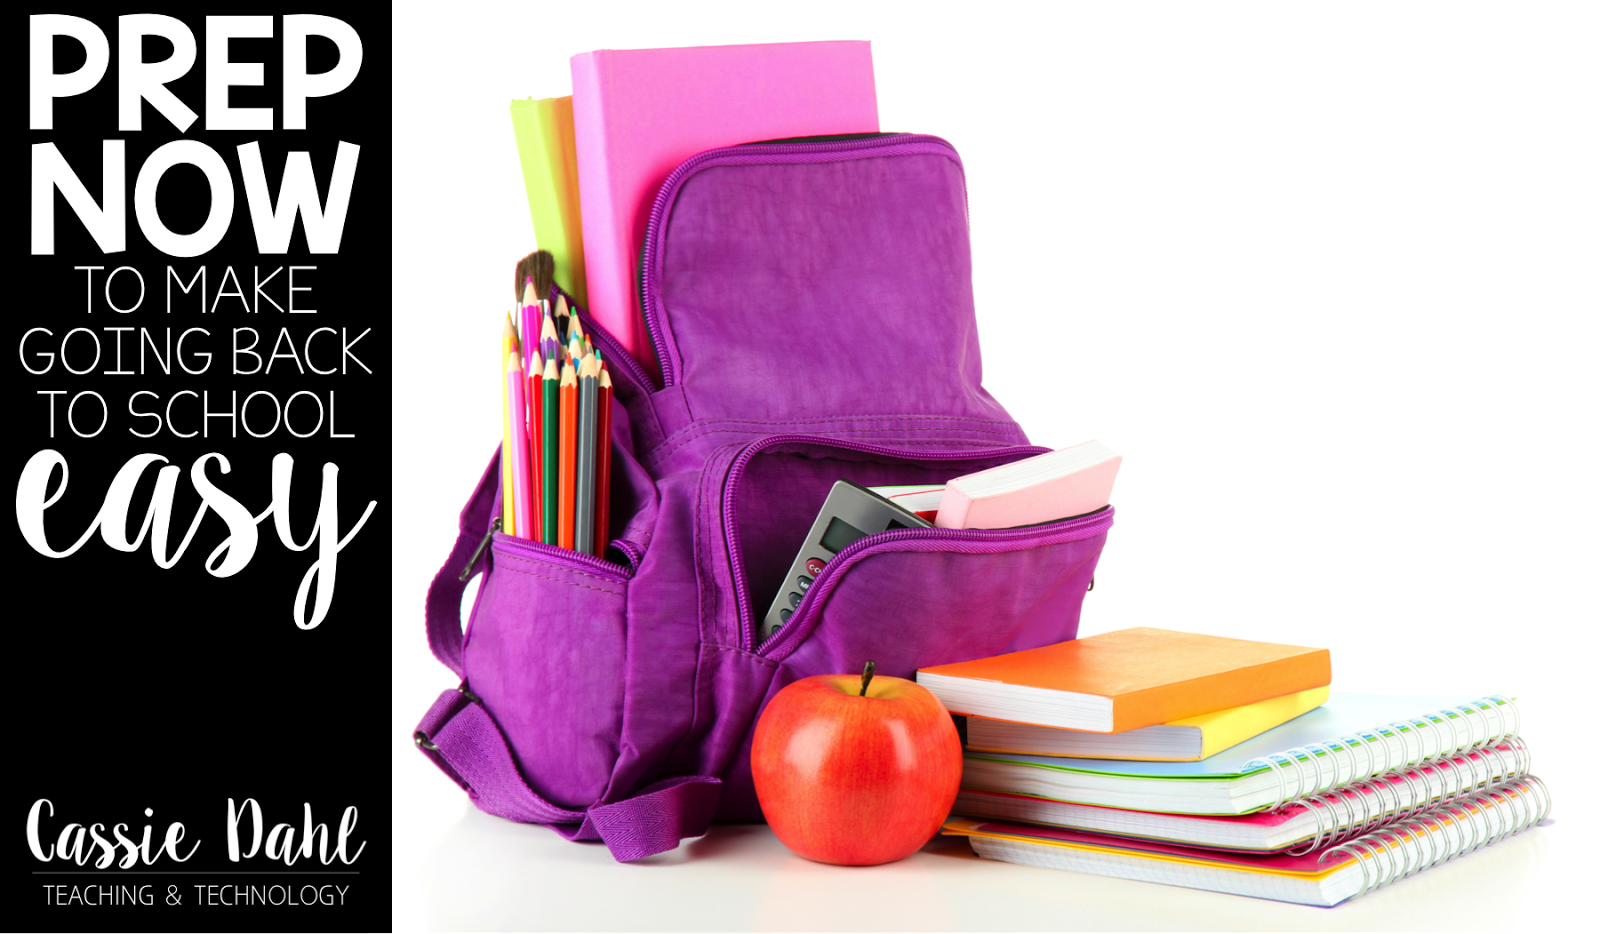 Going Back to School is stressful for every teacher. There never seems to be enough time in the day to get everything prepped and perfect for your students. Don't stress this fall! Check out this blog post packed with ideas and a freebie to make back to school planning even easier!